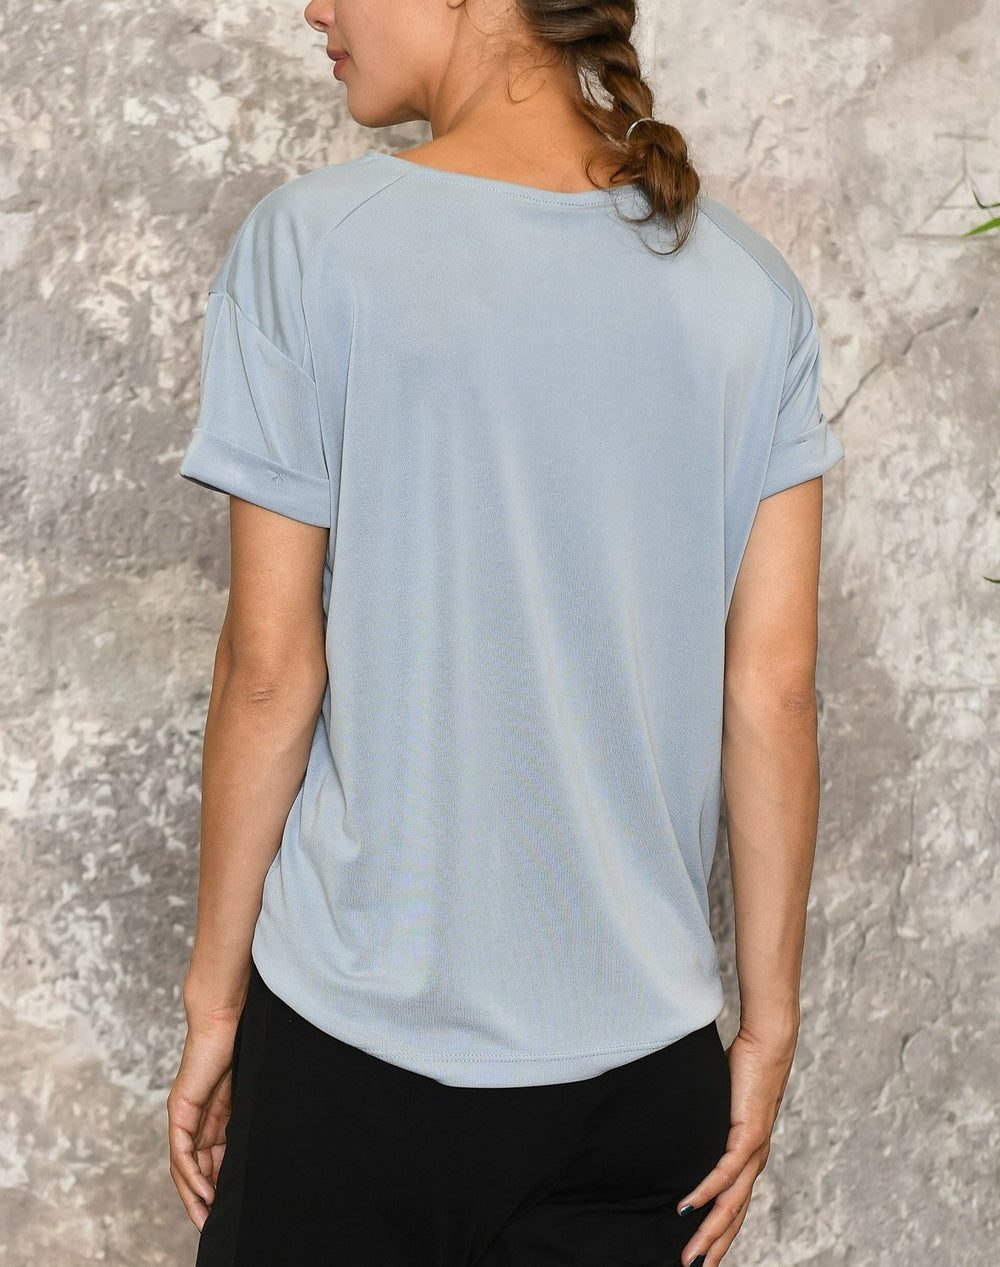 Luxzuz Karin t-shirt 1782 pale blue - Online-Mode